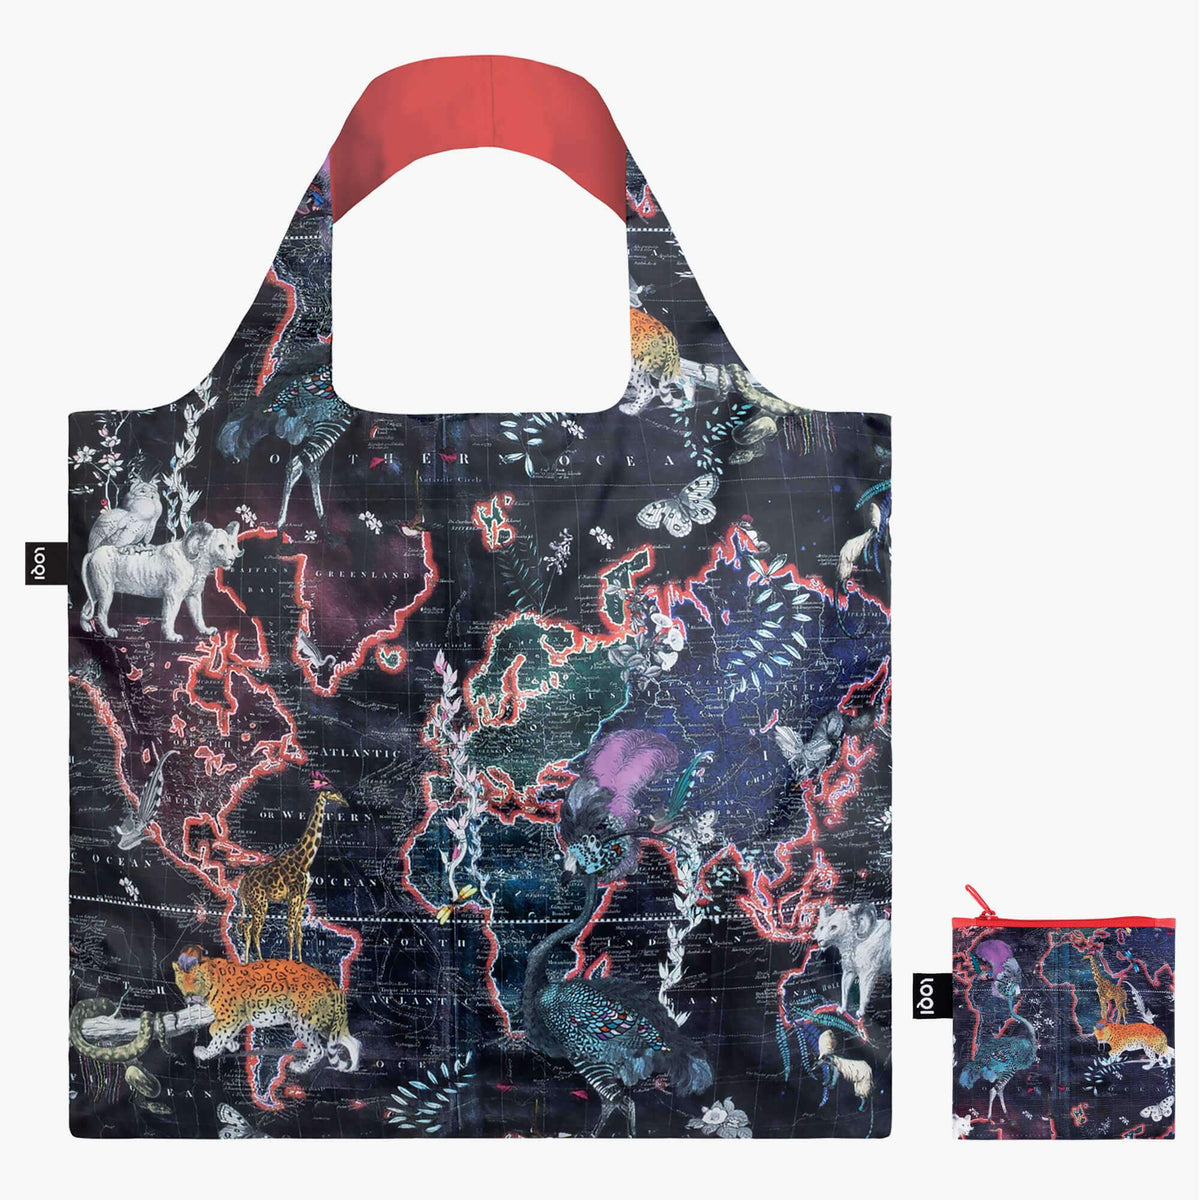 LOQI Kristjana S Williams Interiors World Map Bag with zip pocket